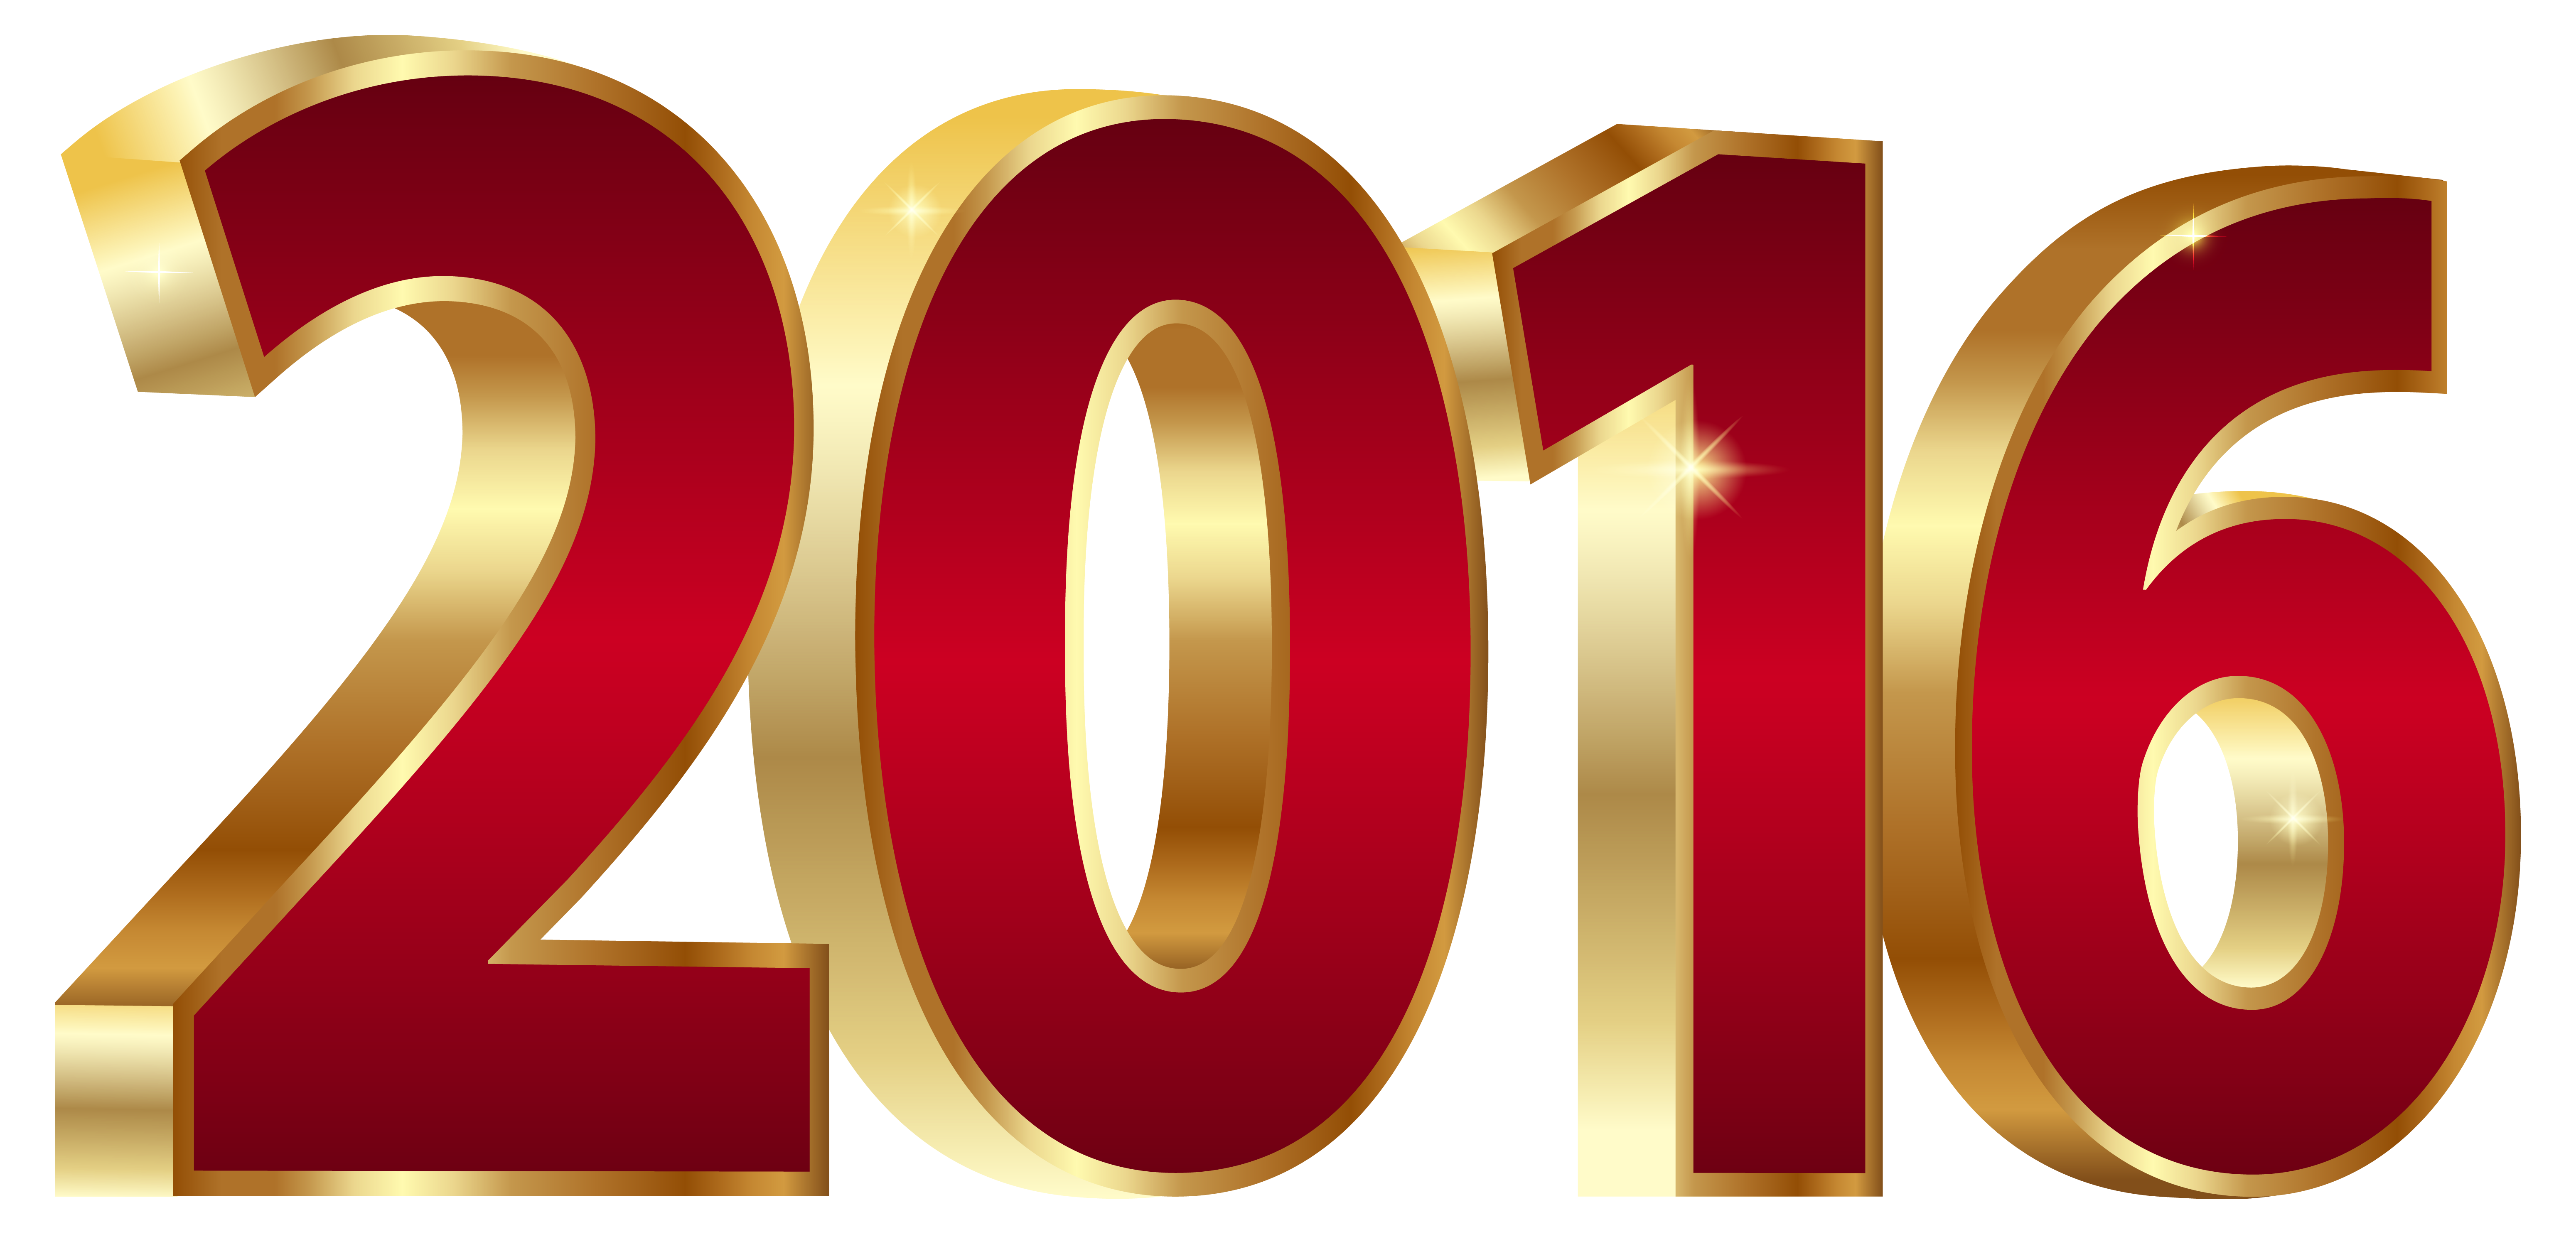 2016 clipart. Gold and red